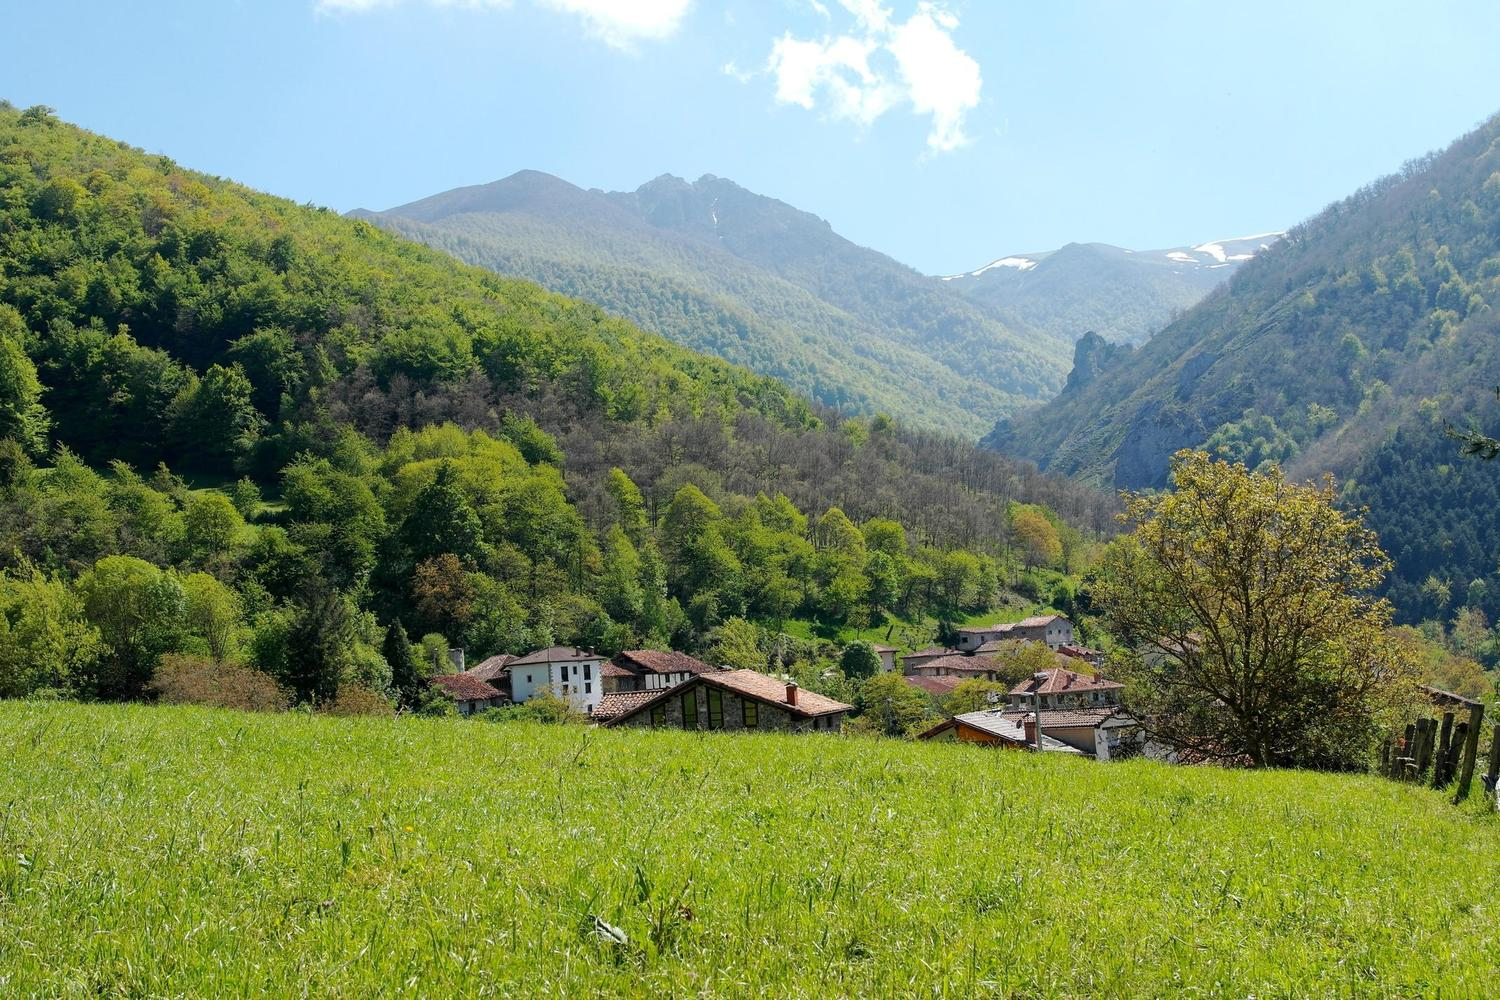 Walking over meadows to the tiny village of Trevino, Picos de Europa